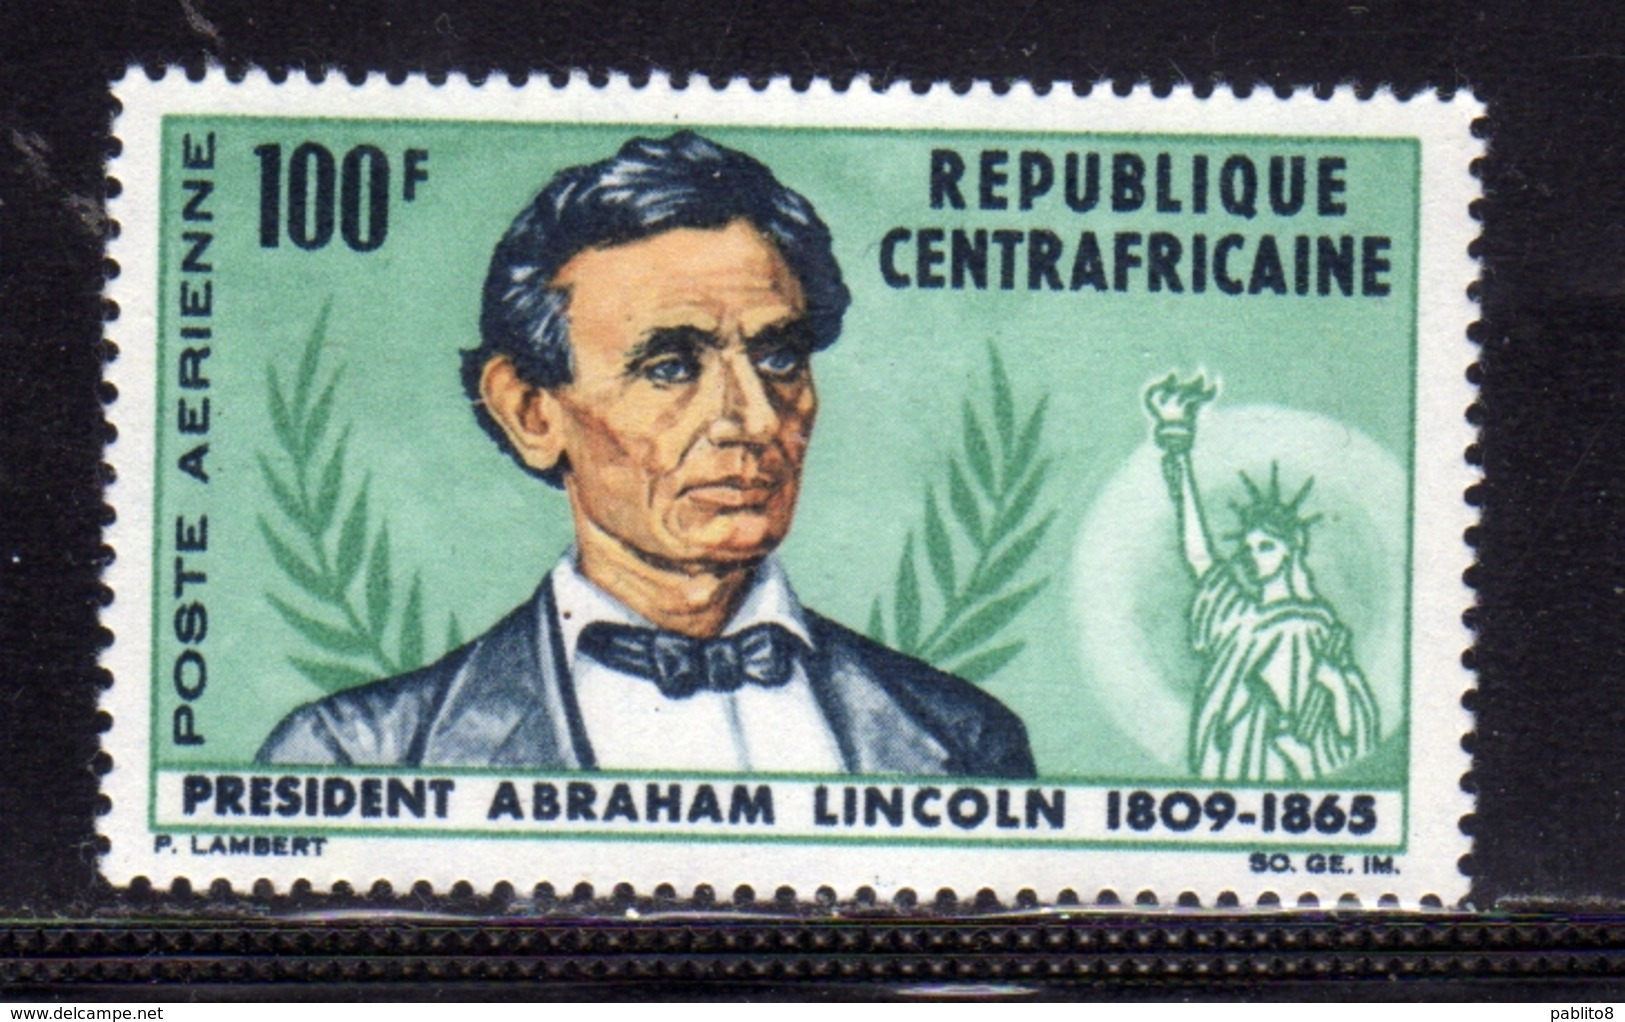 REPUBBLICA CENTRAFRICANA CENTRAFRICAINE CENTRAL AFRICAN REPUBLIC 1965 AIRMAIL ABRAHAM LINCOLN AIRENNE 100f MNH - Repubblica Centroafricana